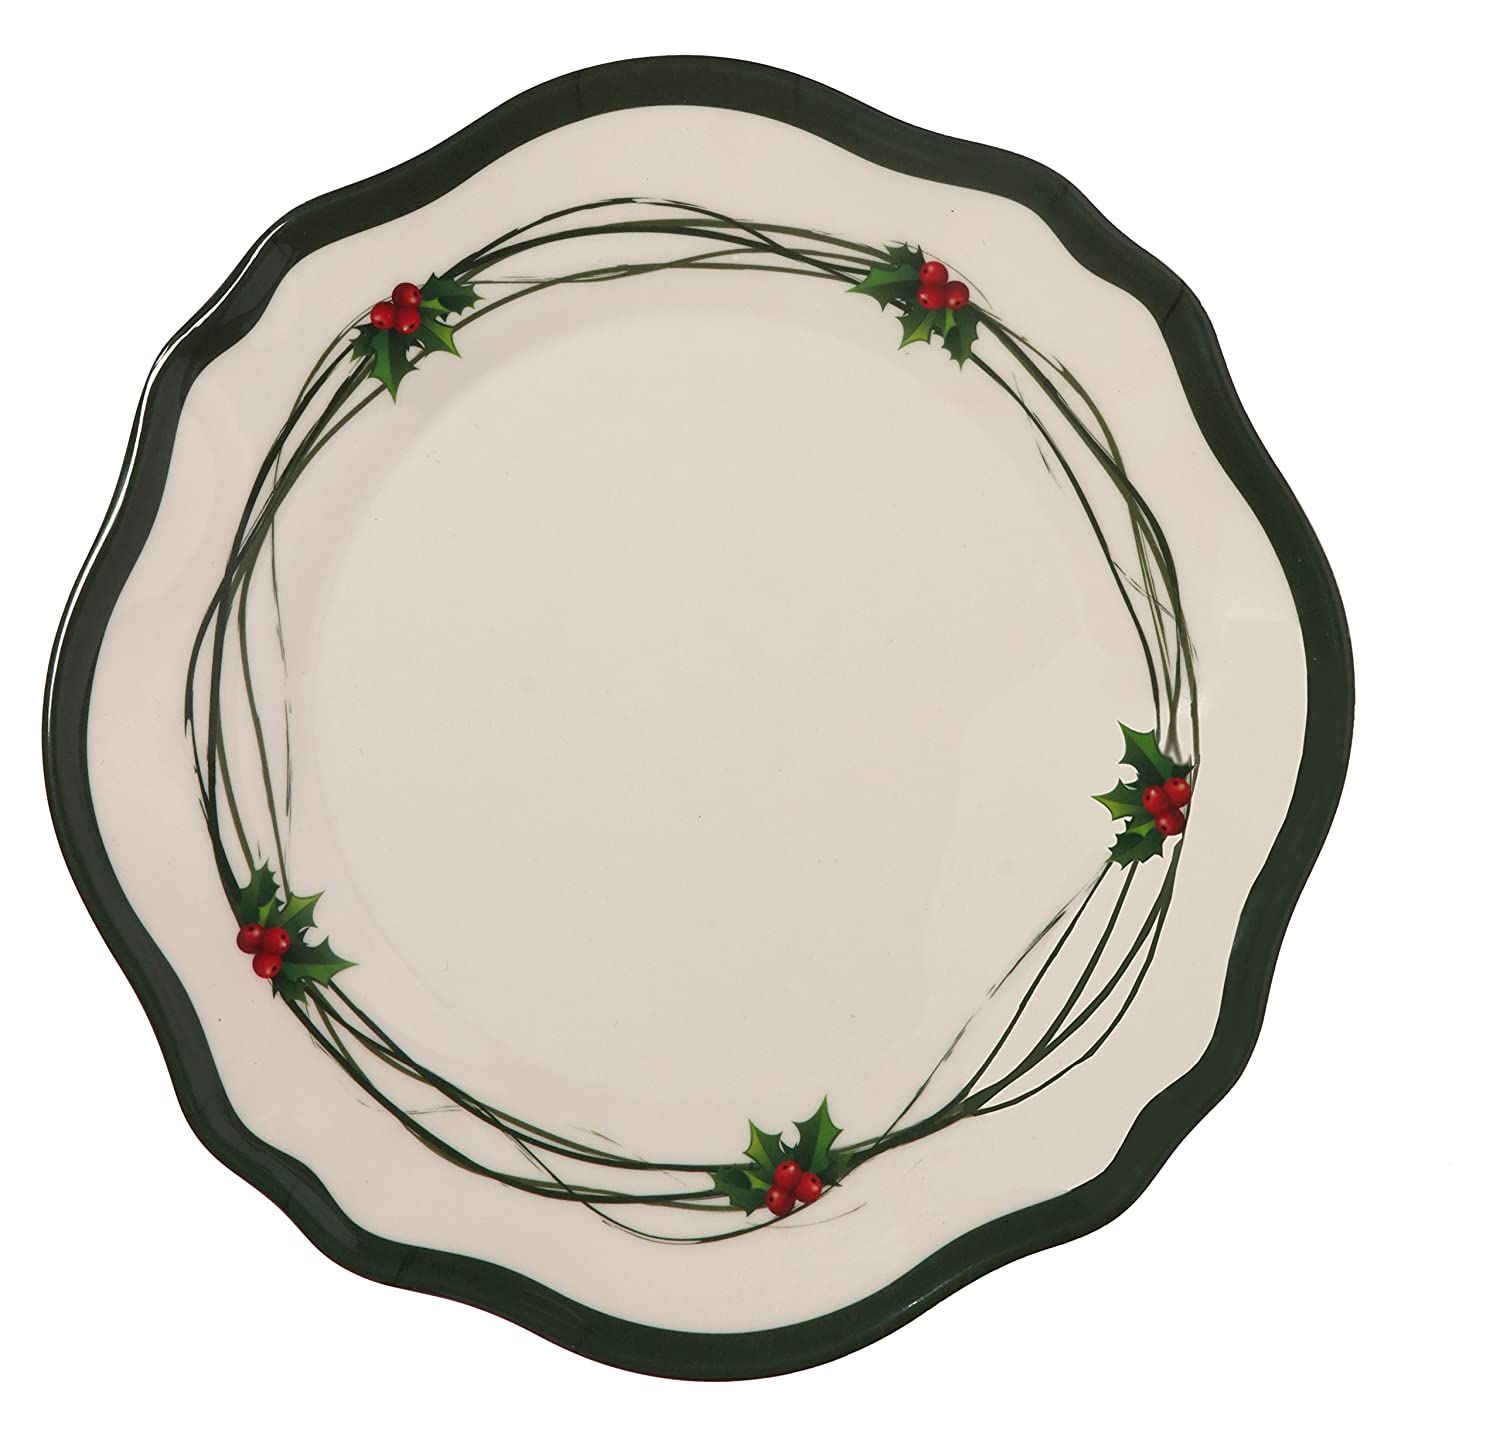 Melange 6-Piece 100% Melamine Salad Plate Set (Christmas Berry Collection ) | Shatter-Proof and Chip-Resistant Melamine Salad Plates Ruby Compass Melamine 612409791887